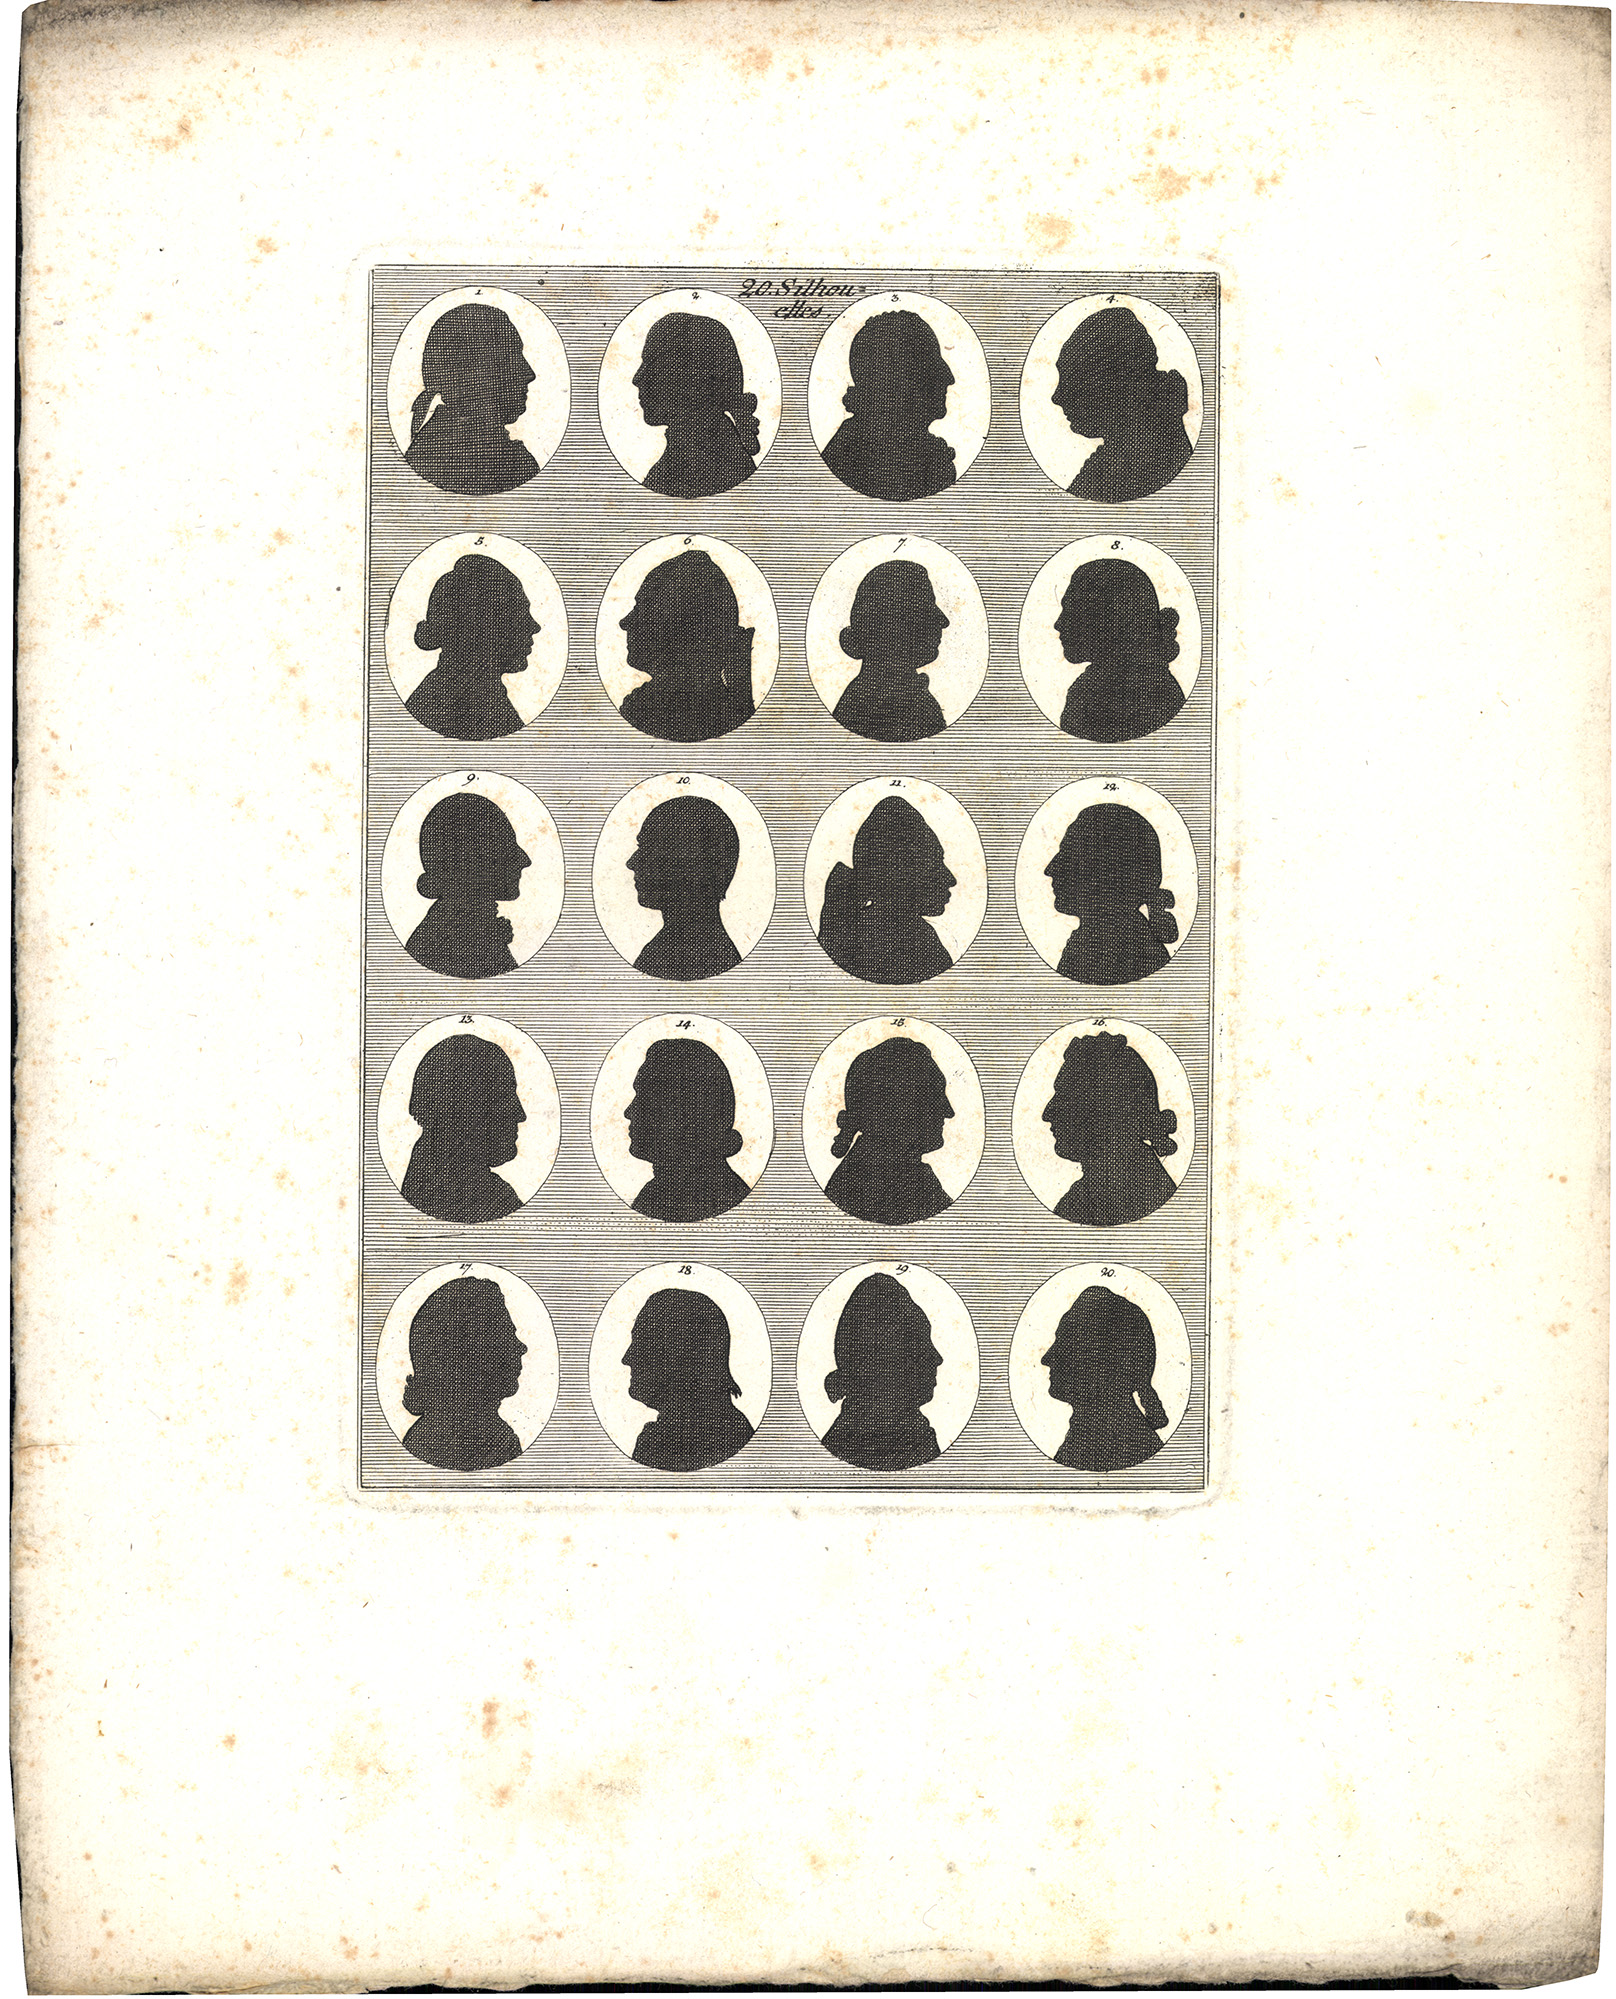 20 silhouettes